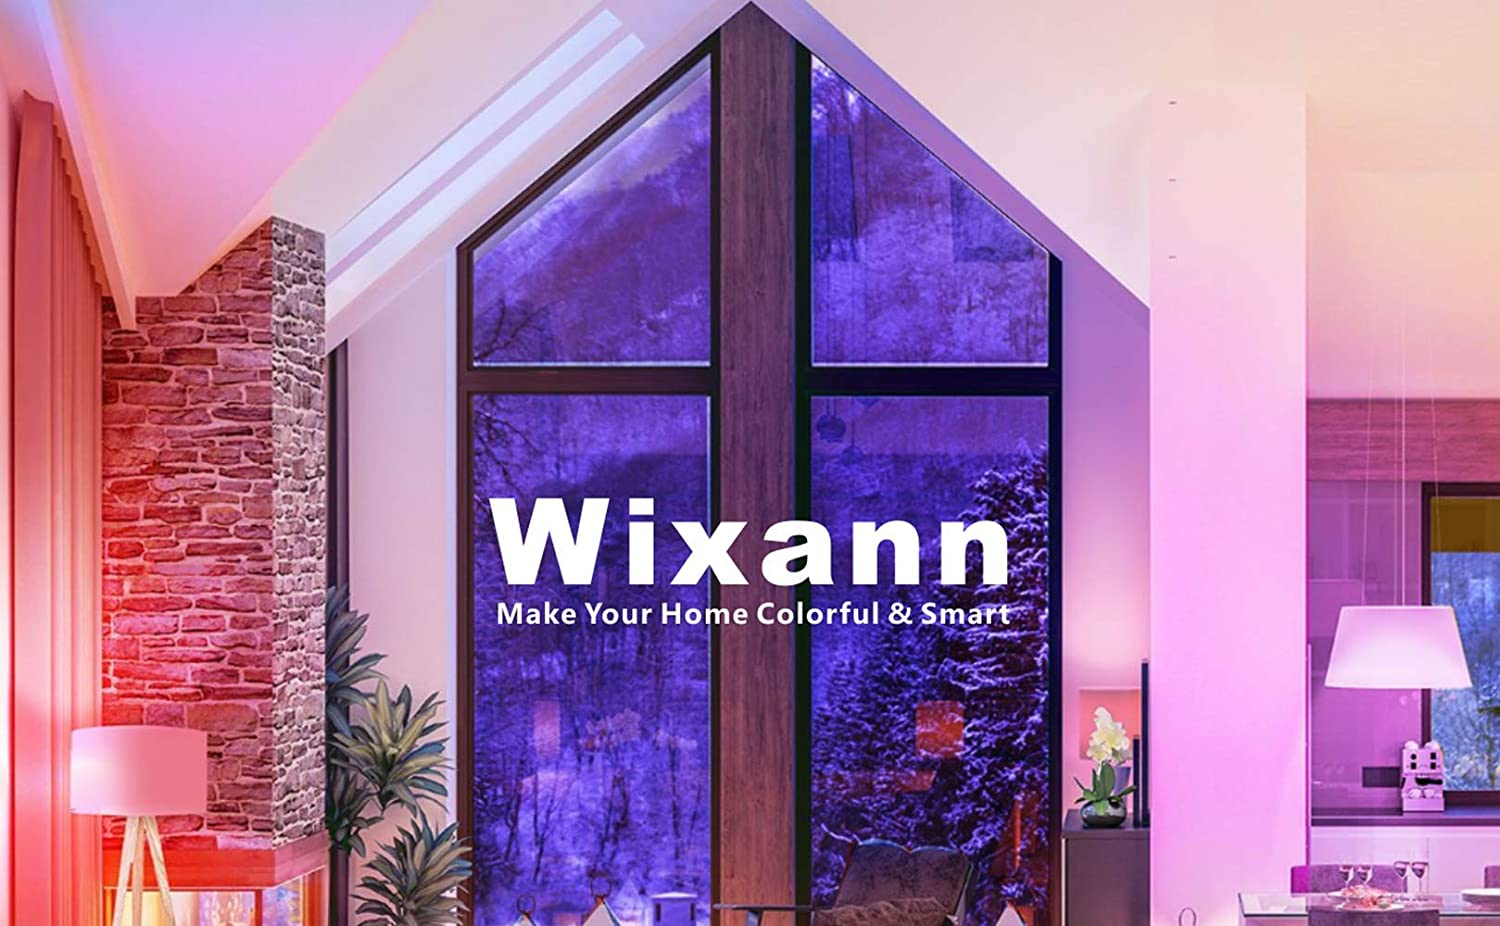 E26 60W Replacement A19 2-Pack Wixann Smart Wi-Fi Light Bulb Compatible with Alexa and Google Home Assistant 7W Dimmable RGBCW Color Changing LED Bulb IFTTT /& Siri Compatible No Hub Required